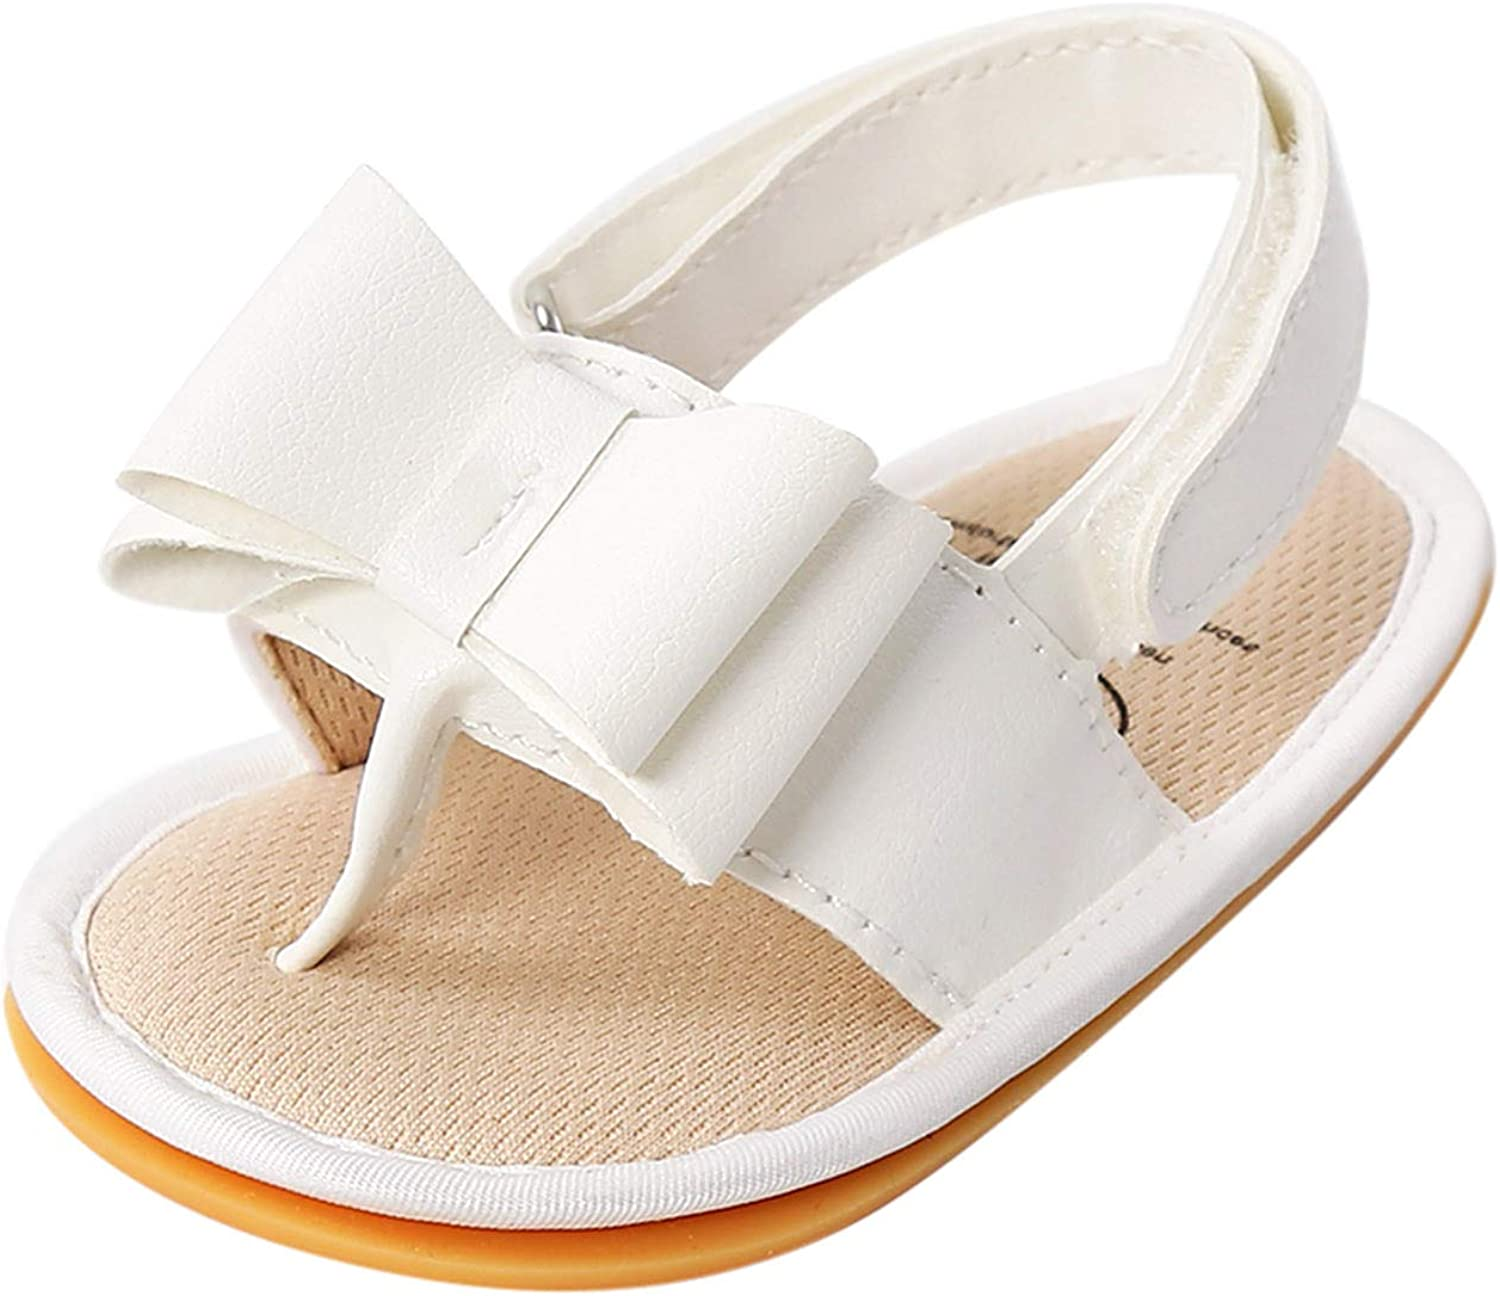 Slippers for Baby Kids Bow Sandals Drying Max 68% OFF Sl Toe Open Quick Soft Now free shipping